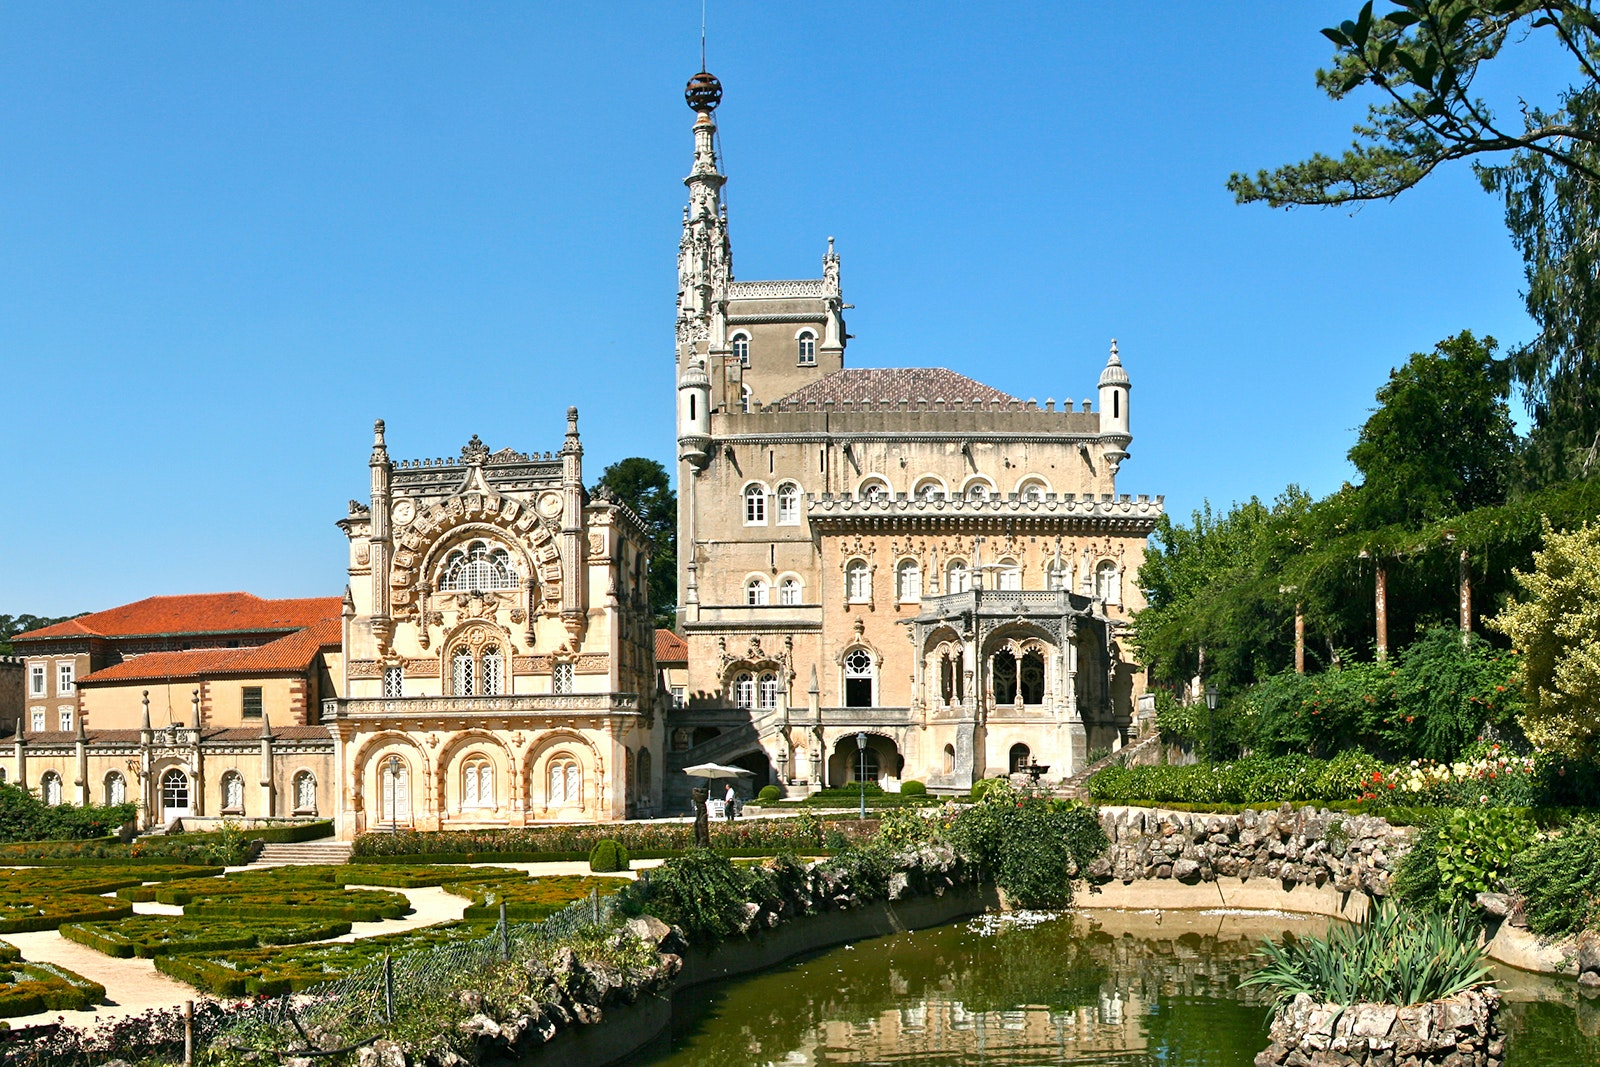 The Palace Hotel do Bussaco's ornate architectural style is known as Manueline, or Portuguese late Gothic.